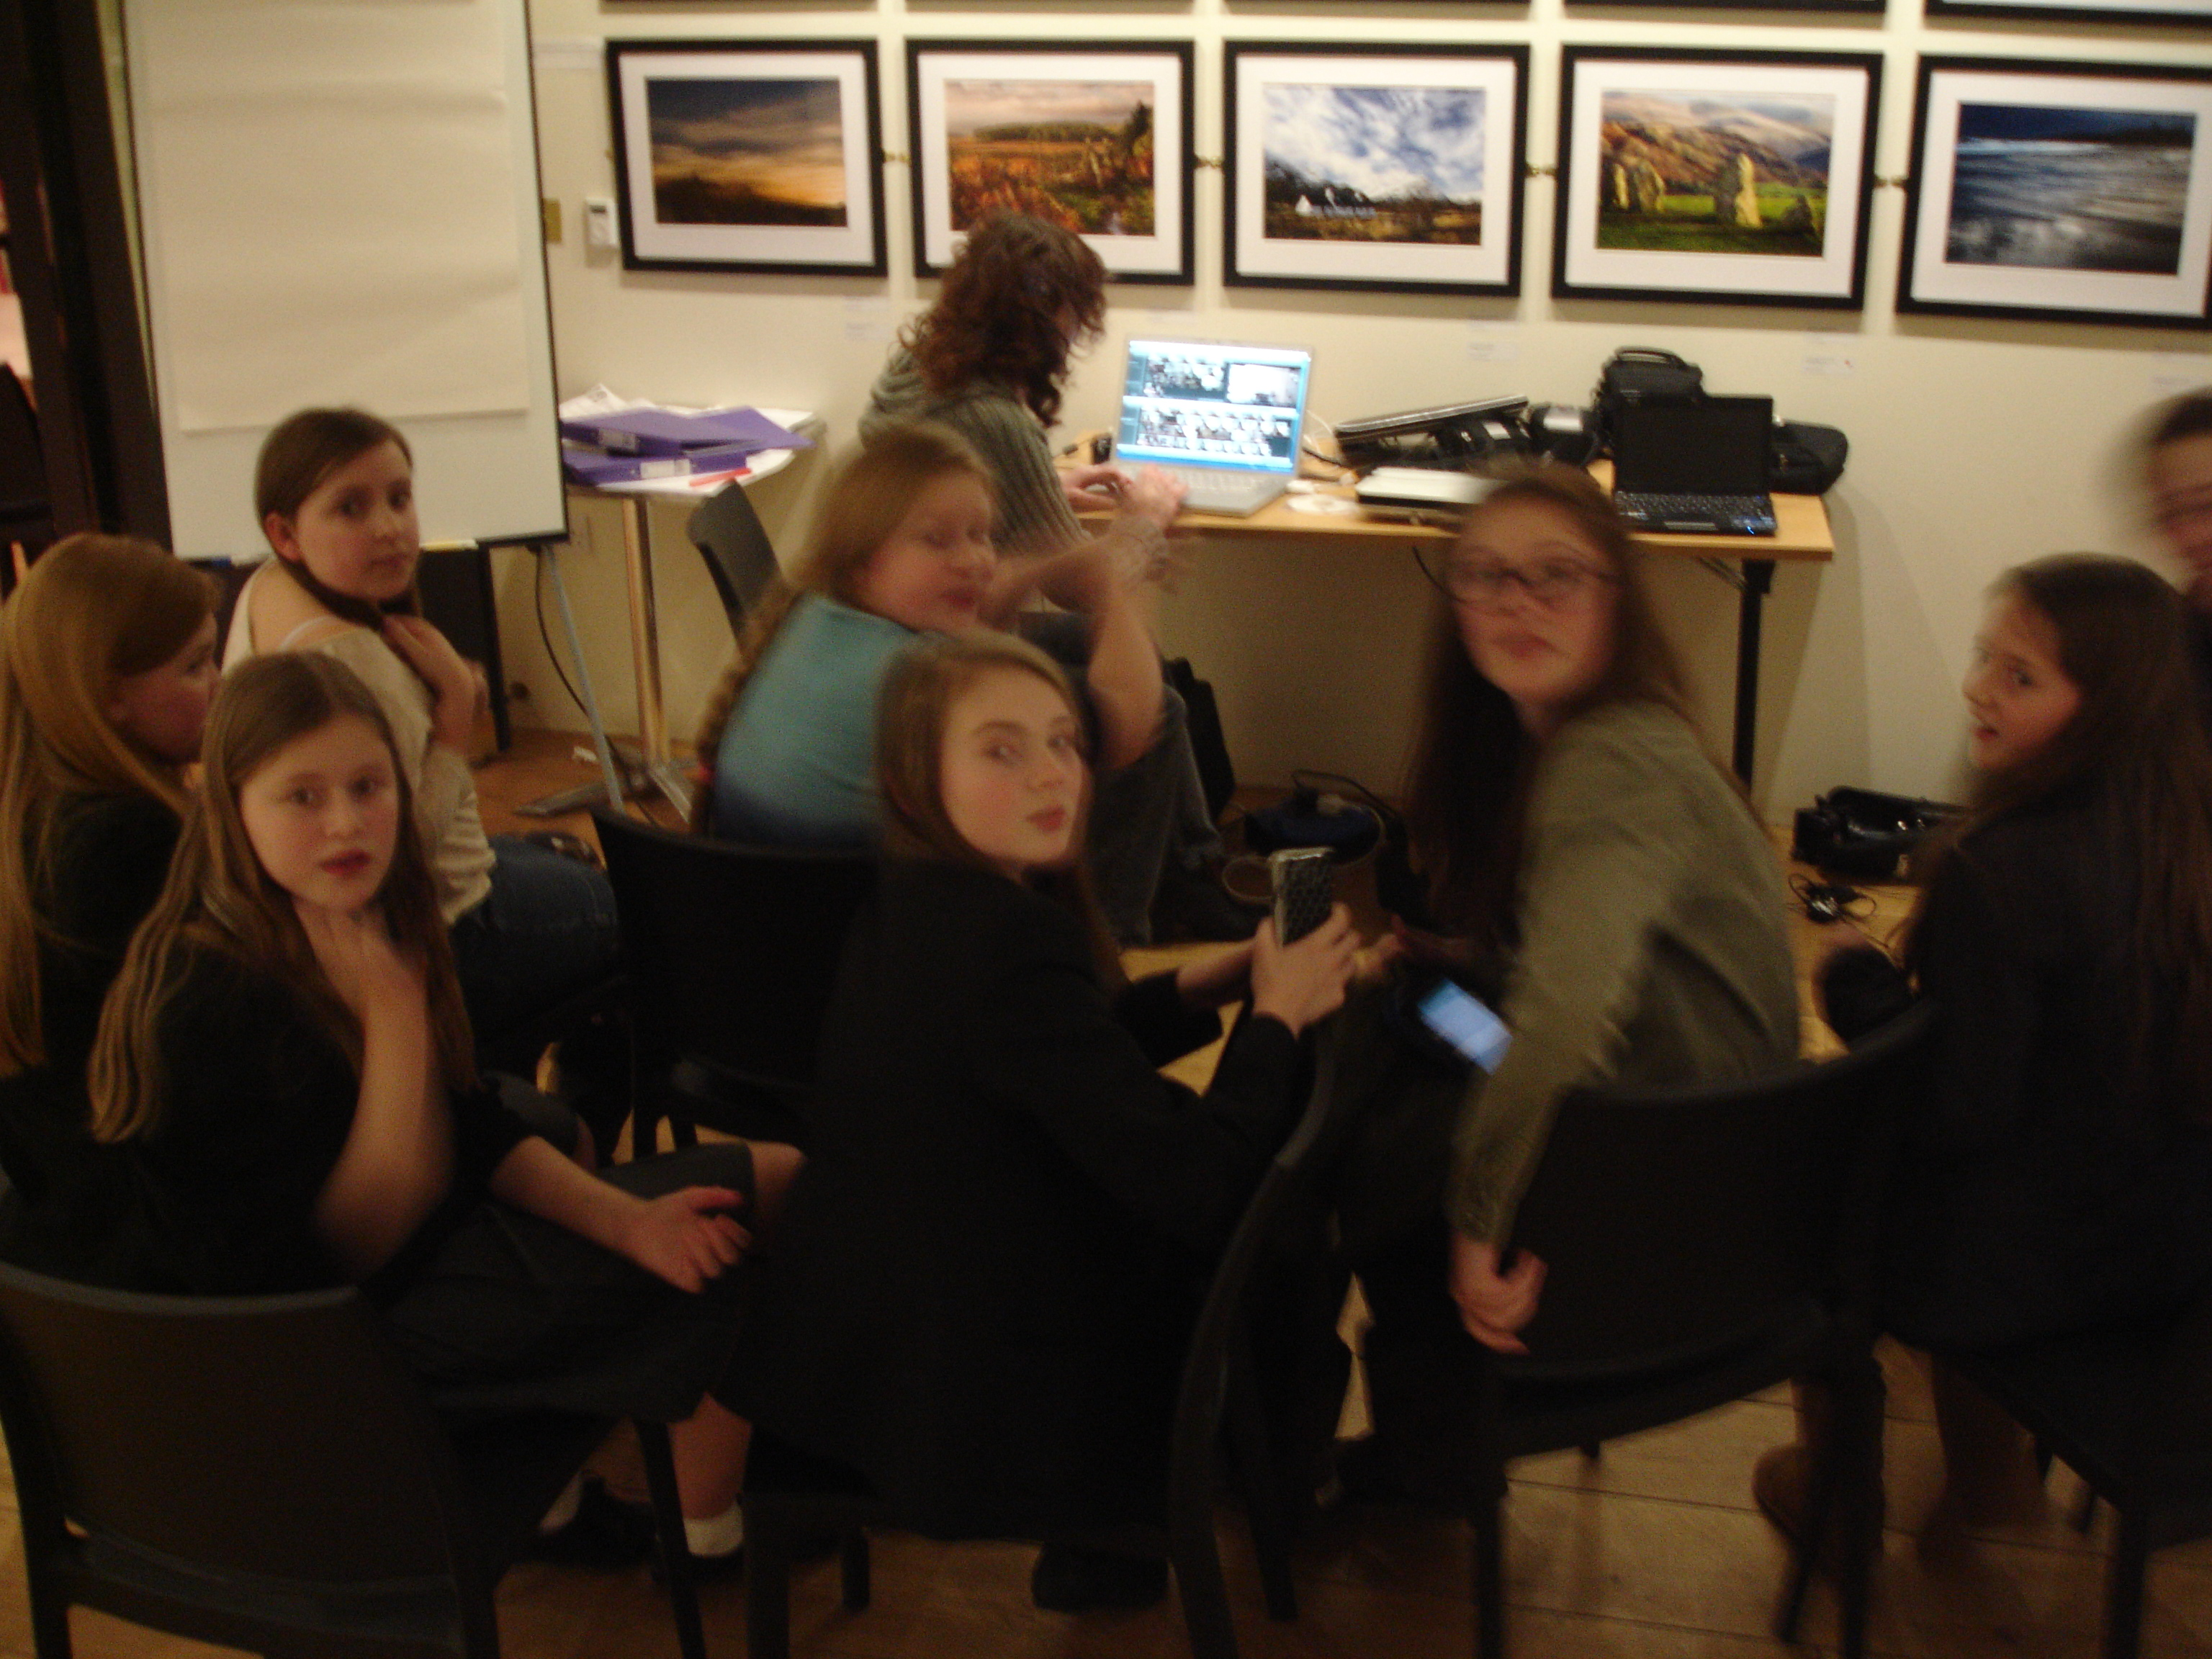 Caistories Film Making Workshop - Week 1